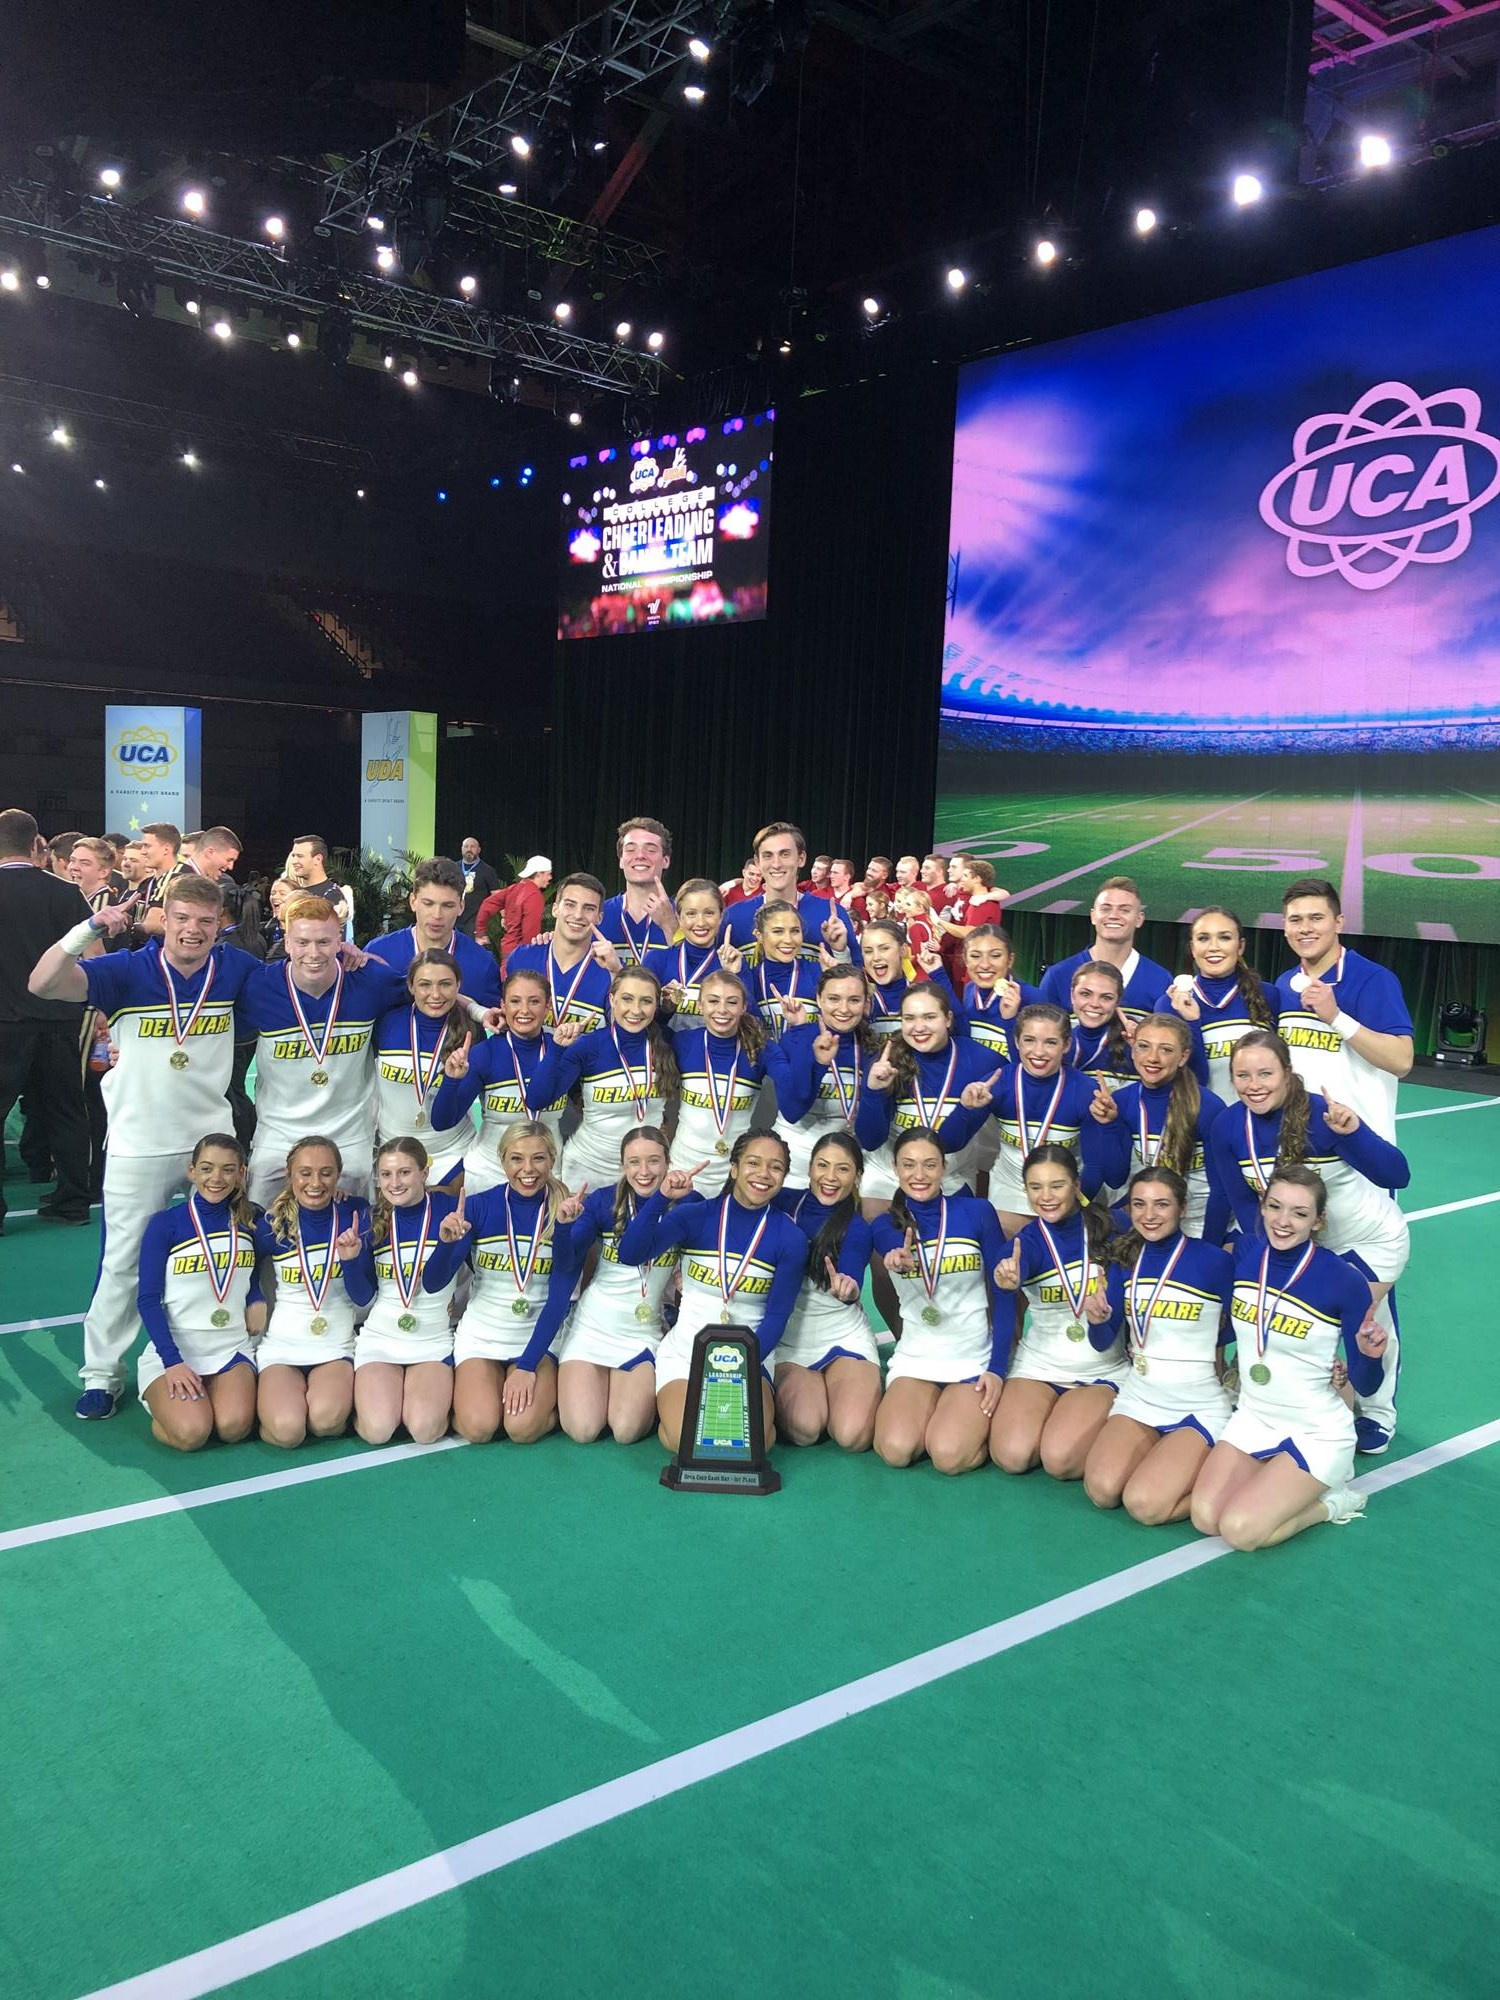 University Of Delaware Calendar 2020 2019 2020 Delaware Cheer Tryouts   University of Delaware Athletics